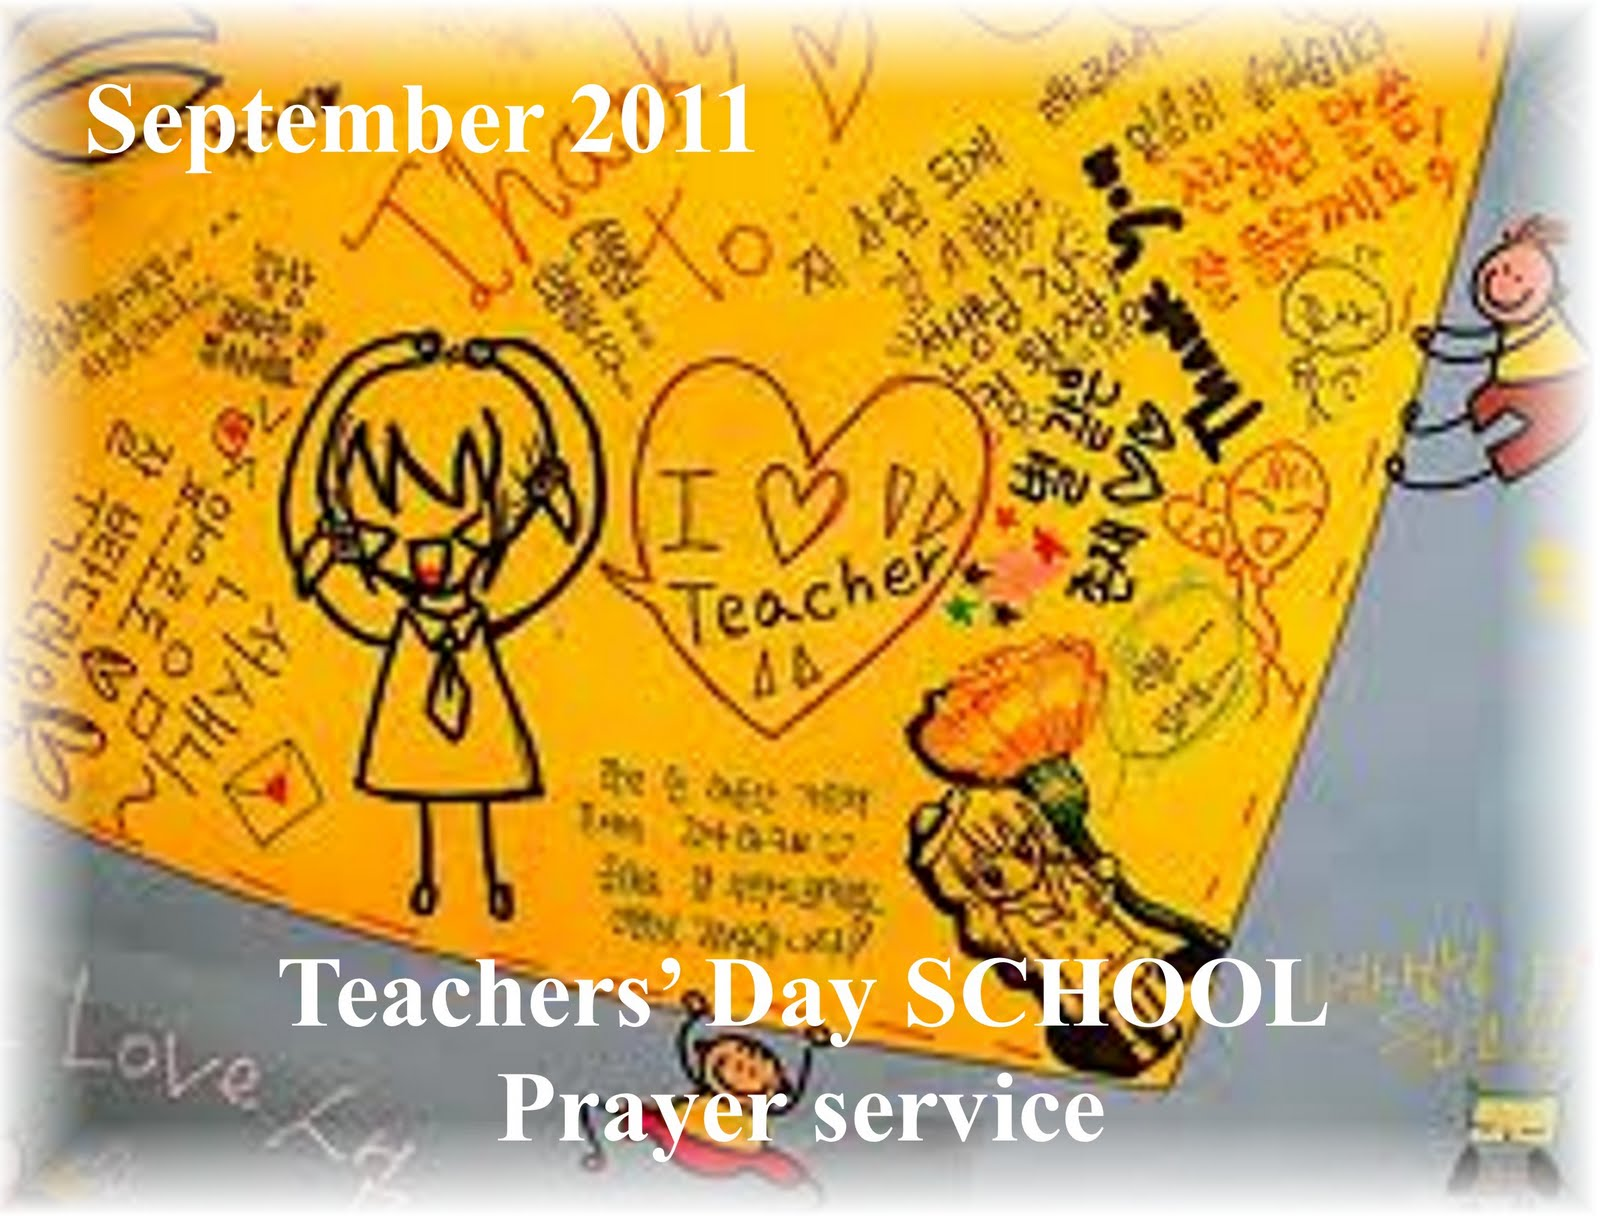 No prayer in school archdiocesan value education